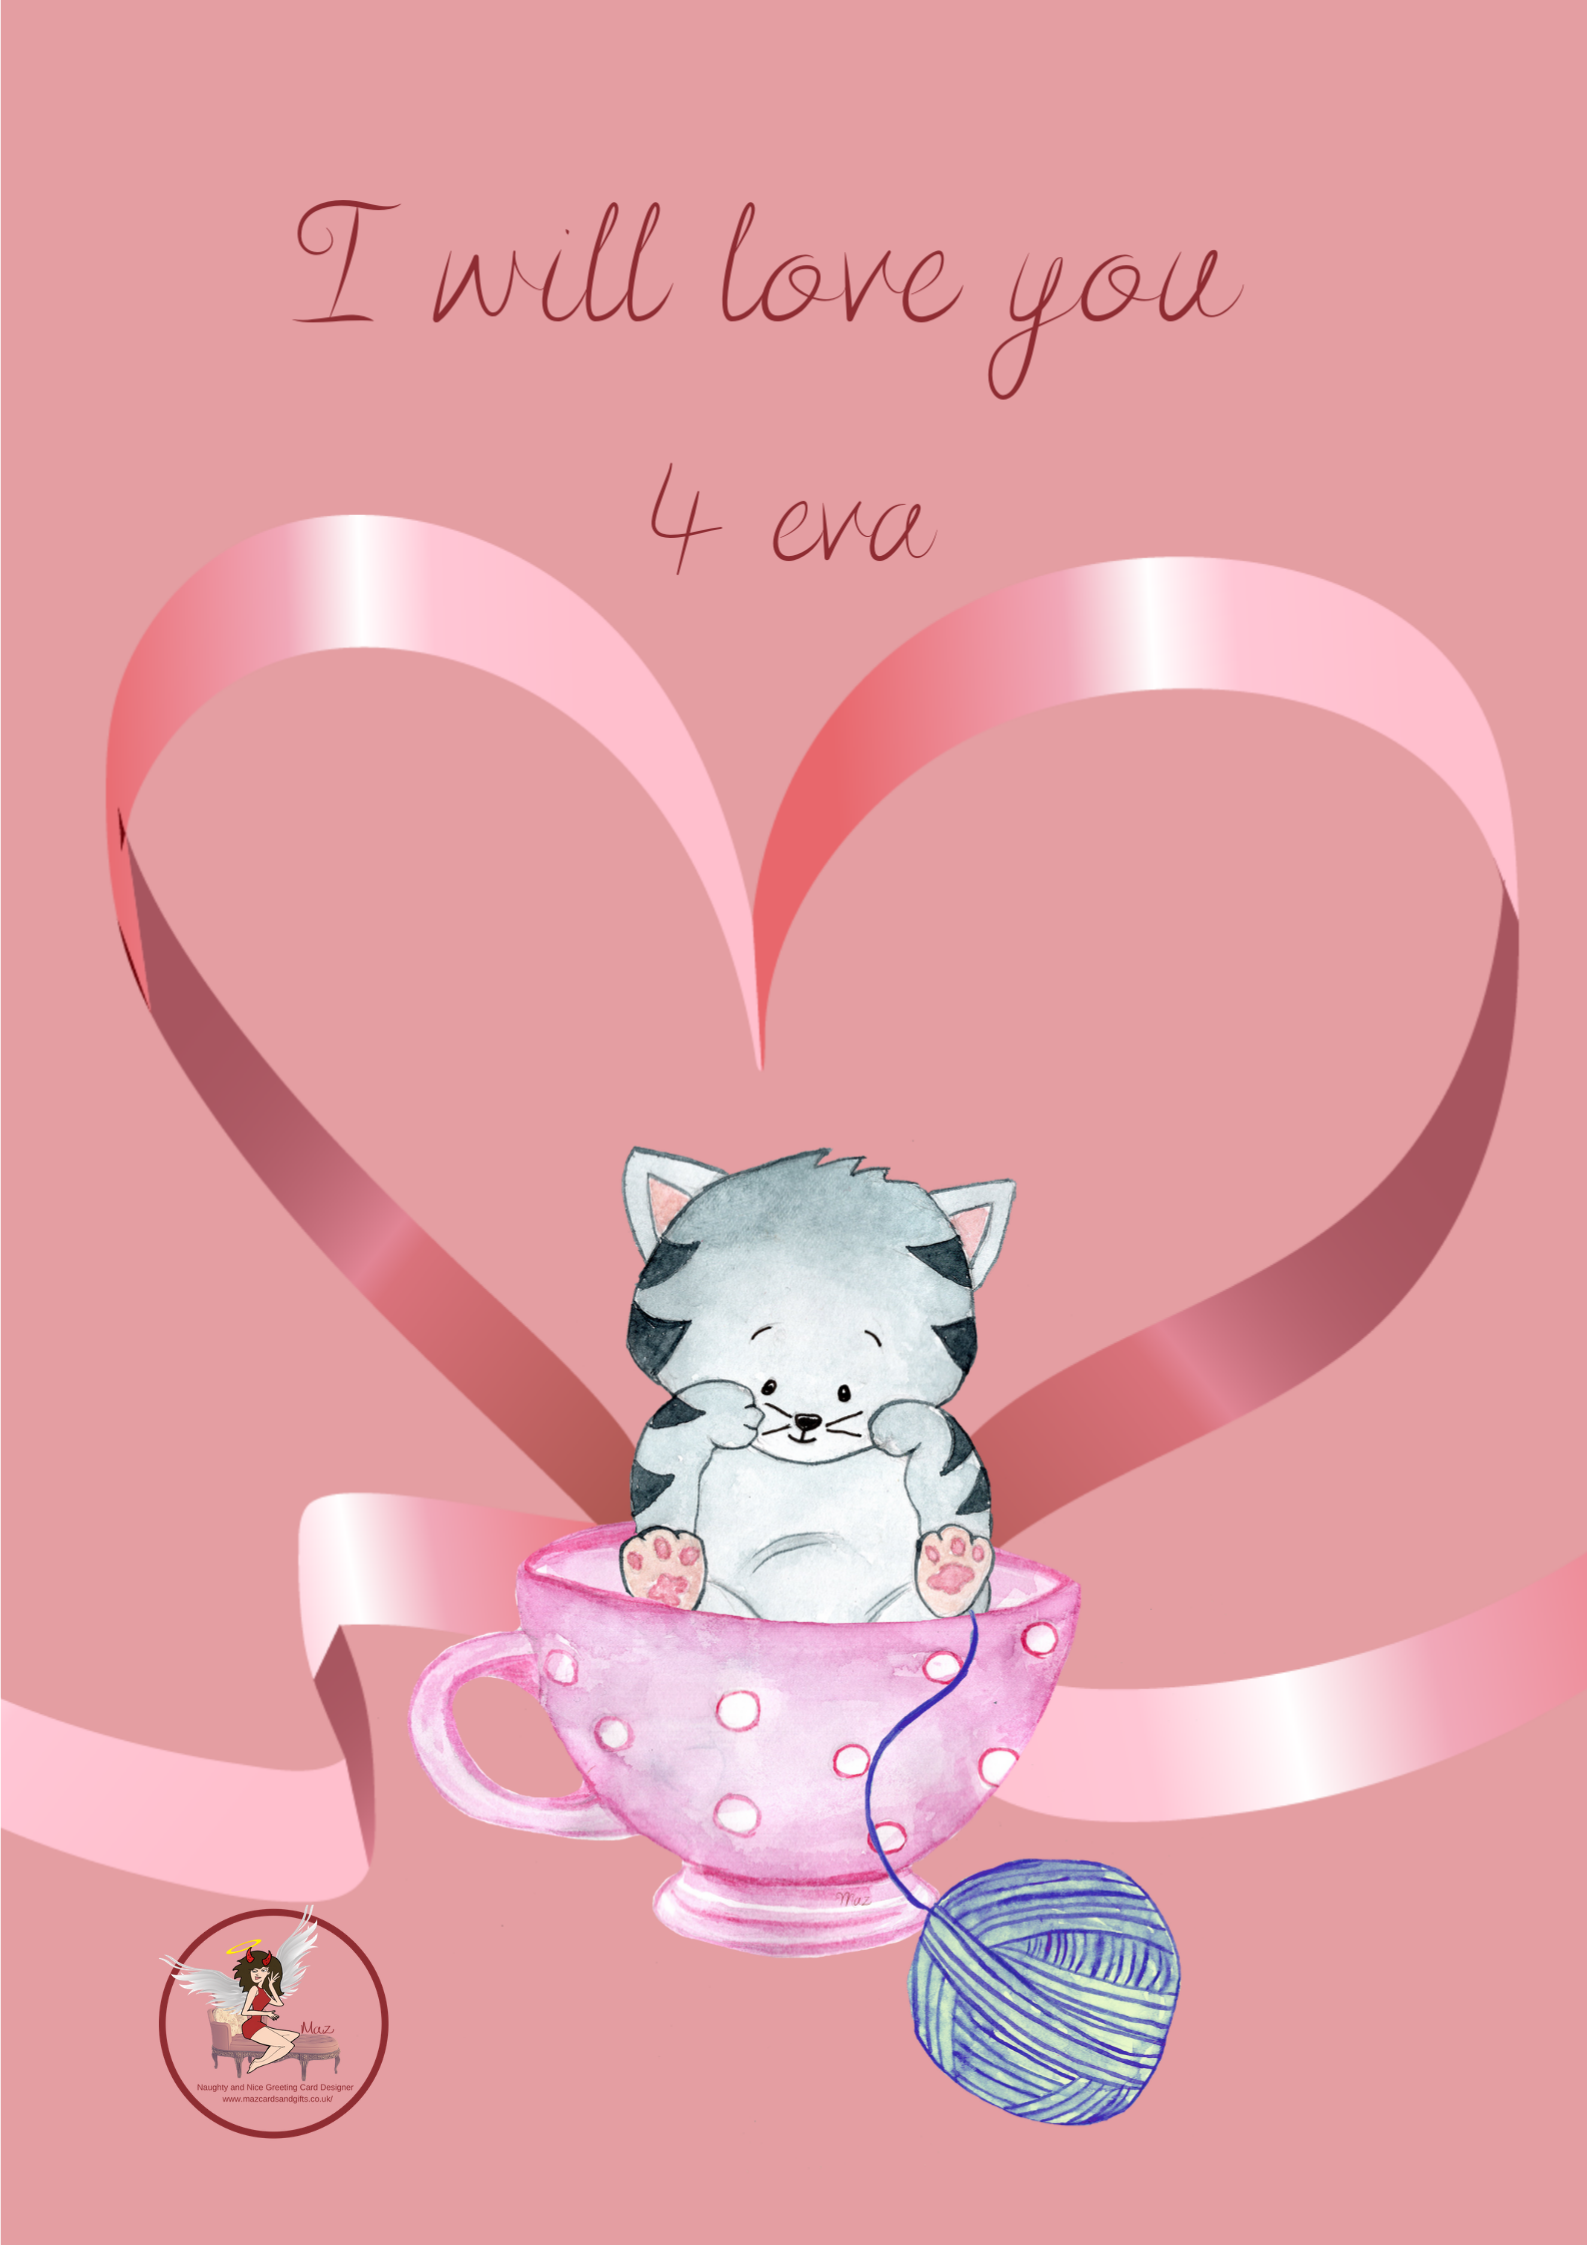 I will love you 4 eva ~ Greeting Card ~Cat ~ Order No 017